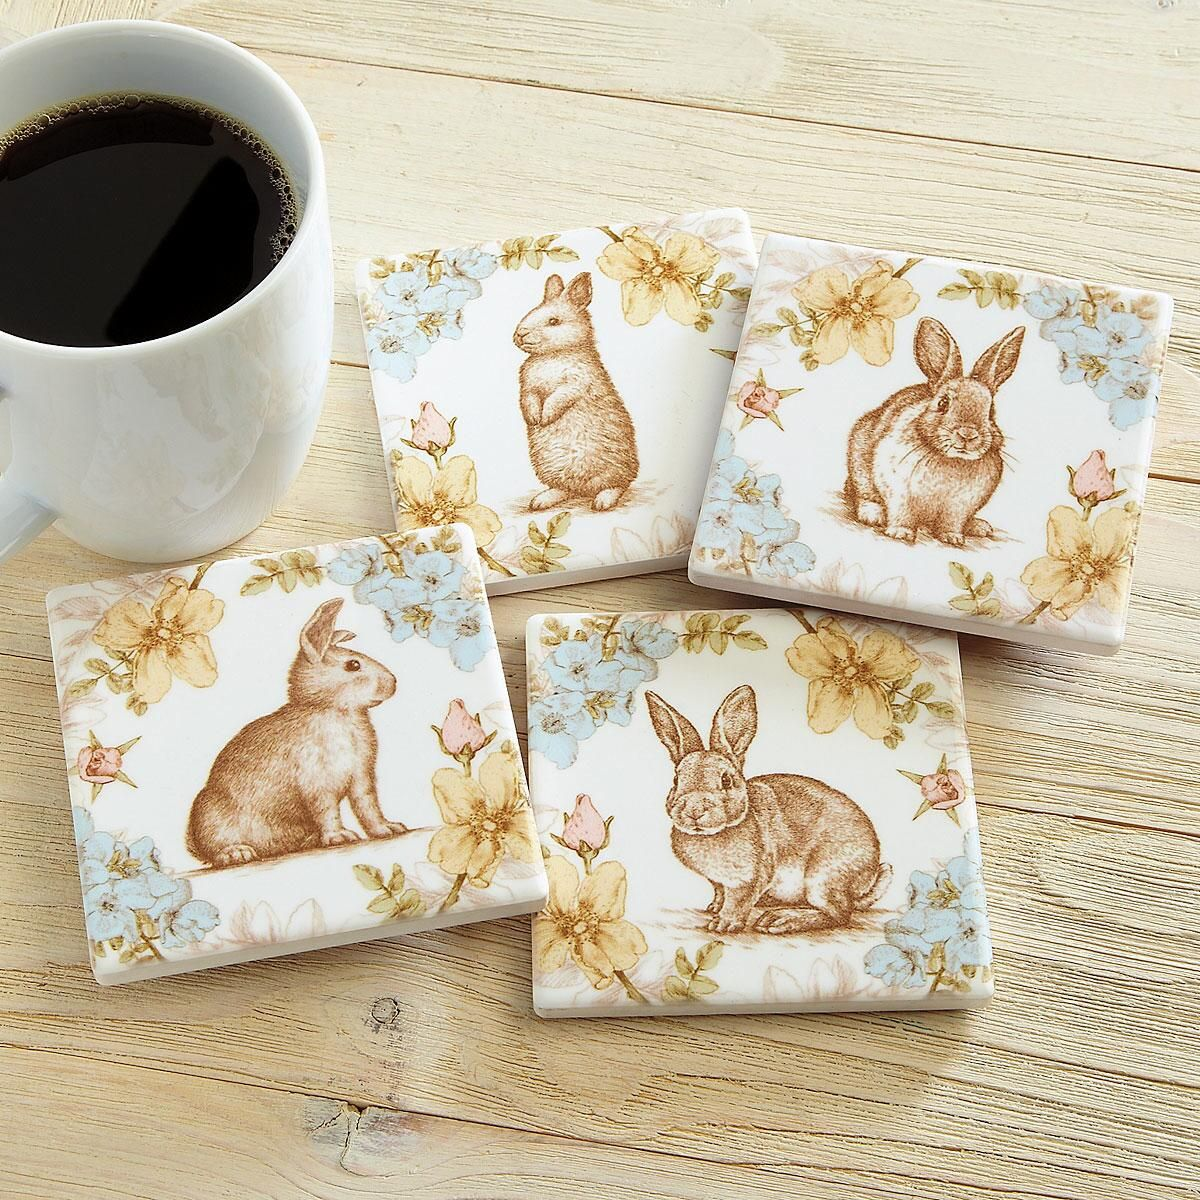 Rabbits & Flowers Coasters